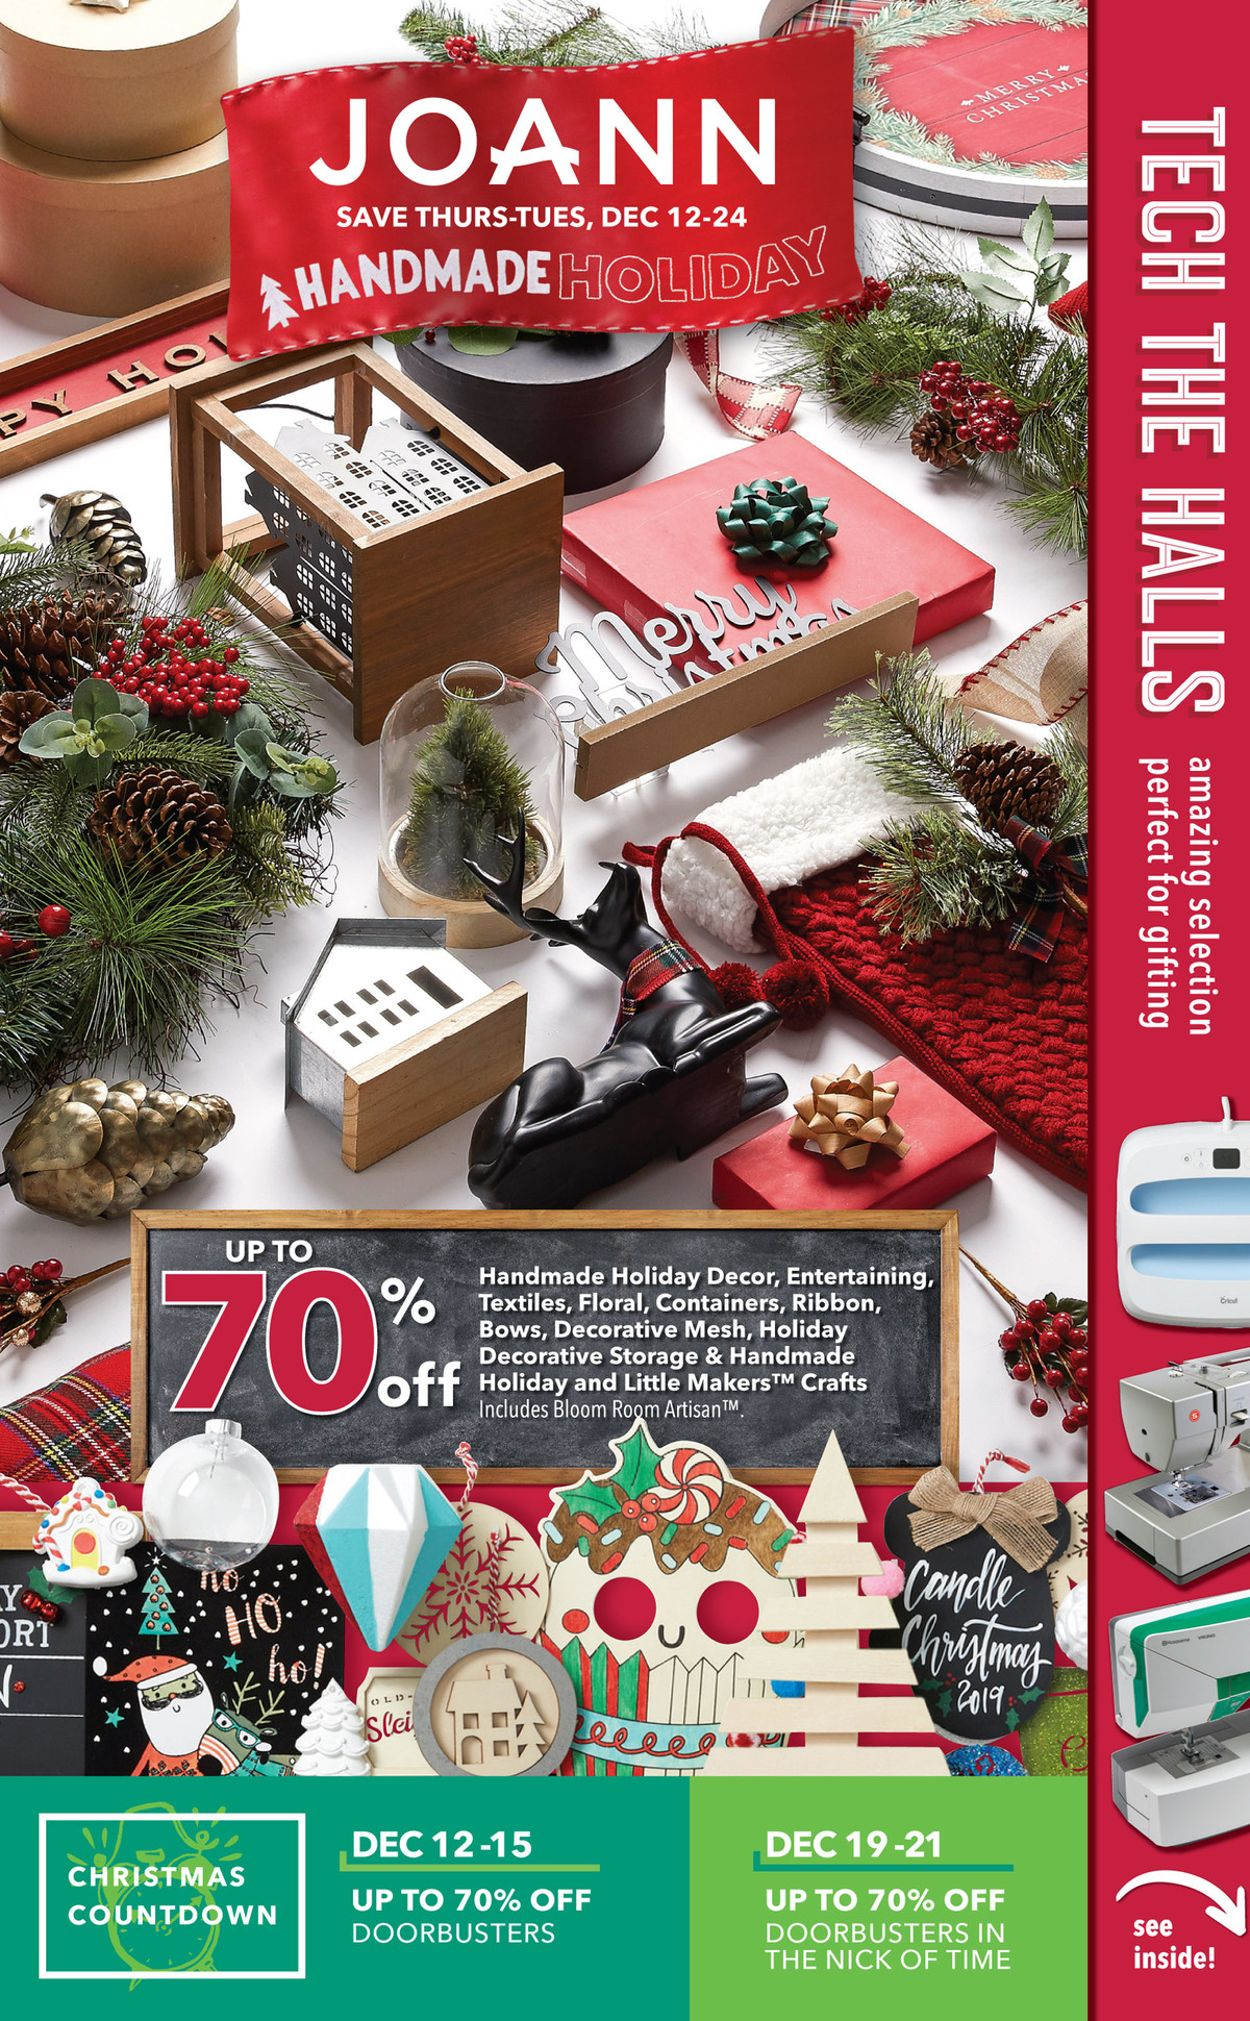 Jayc Foods Christmas Countdown 2020 Jo Ann   Holiday Ad 2019 Current weekly ad 12/12   12/24/2019